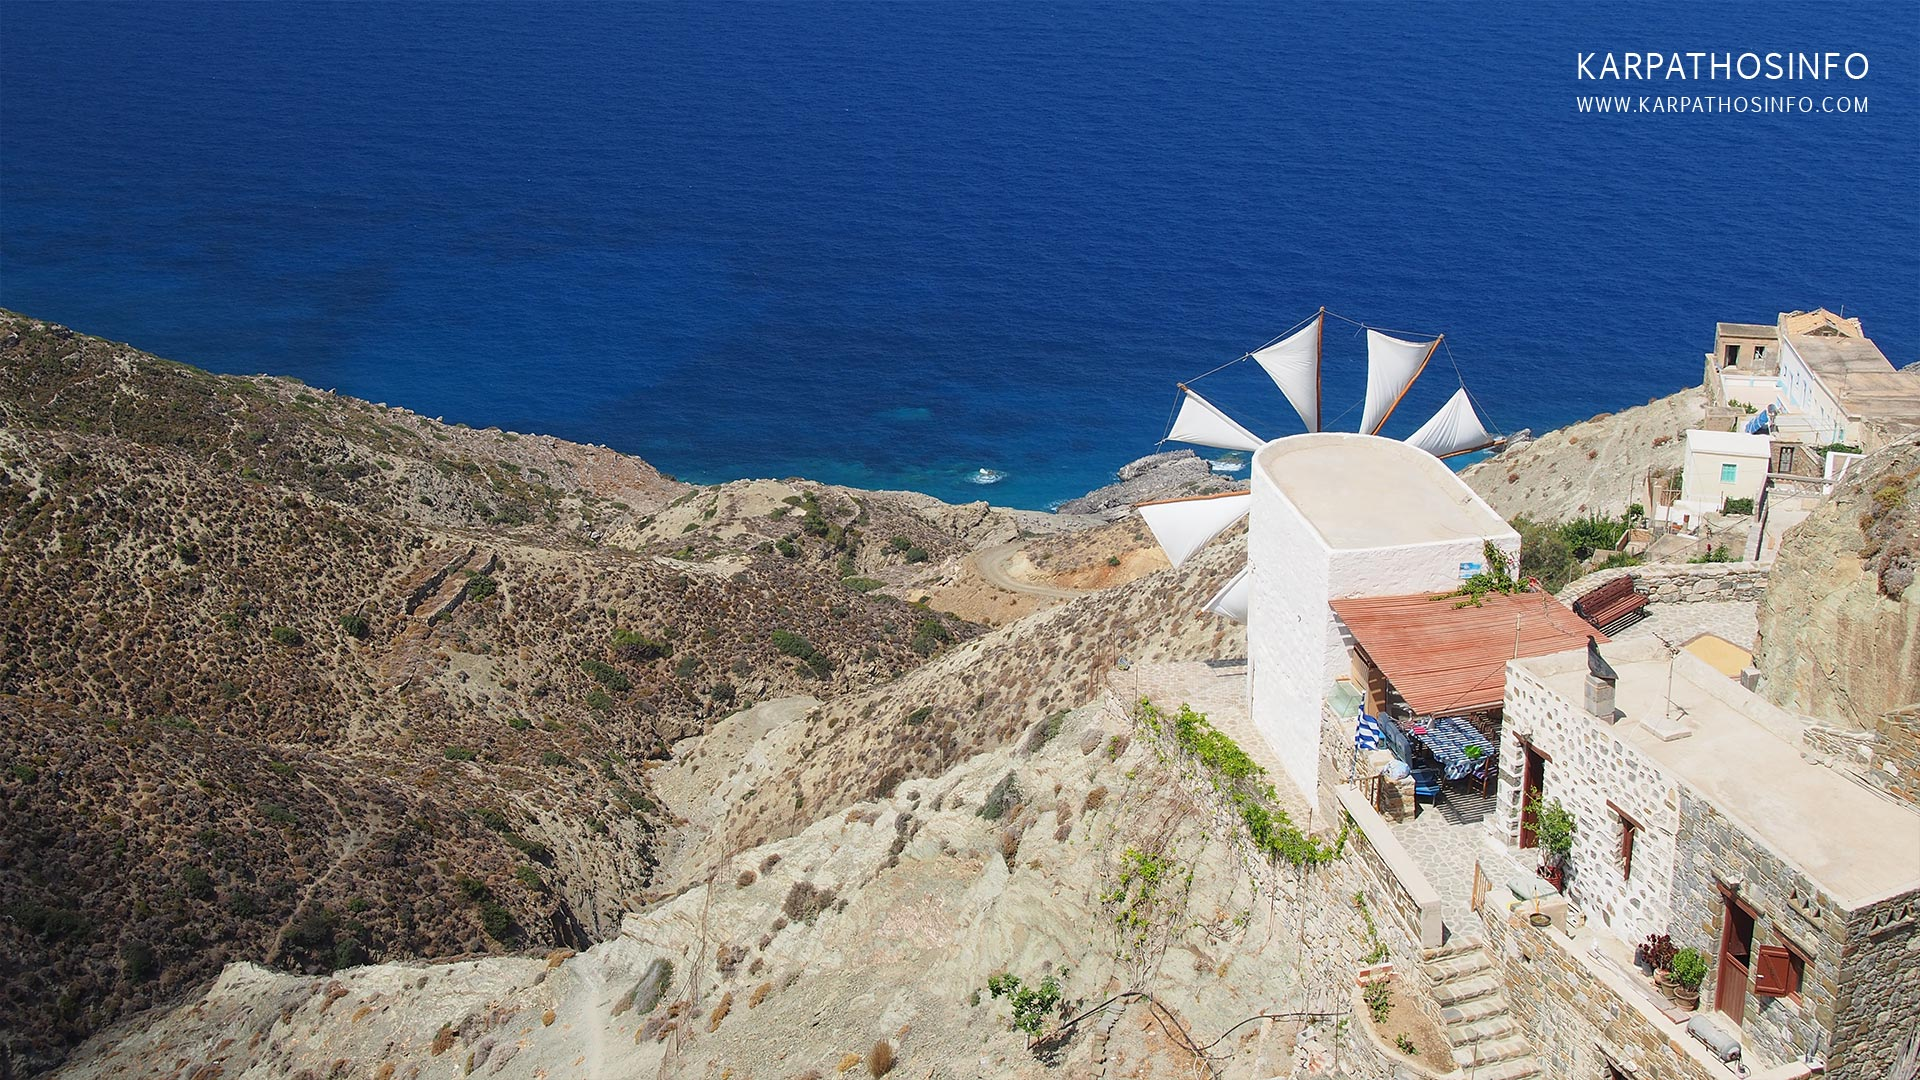 images/slider/windmill-museum-in-olympos.jpg